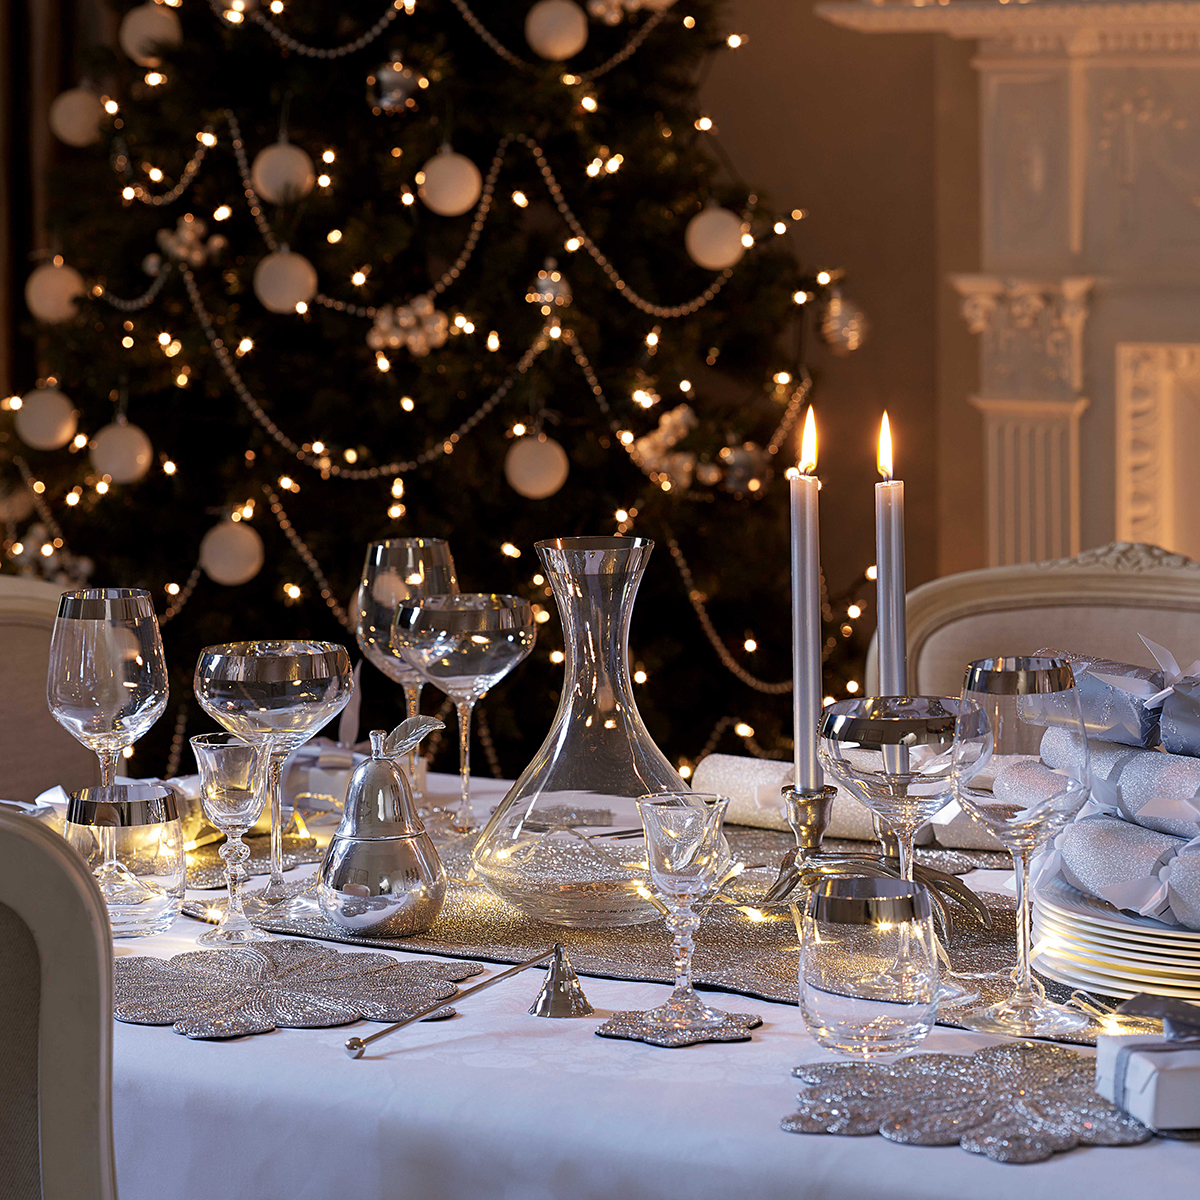 Christmas table decoration ideas for festive dining - Decor de table noel ...